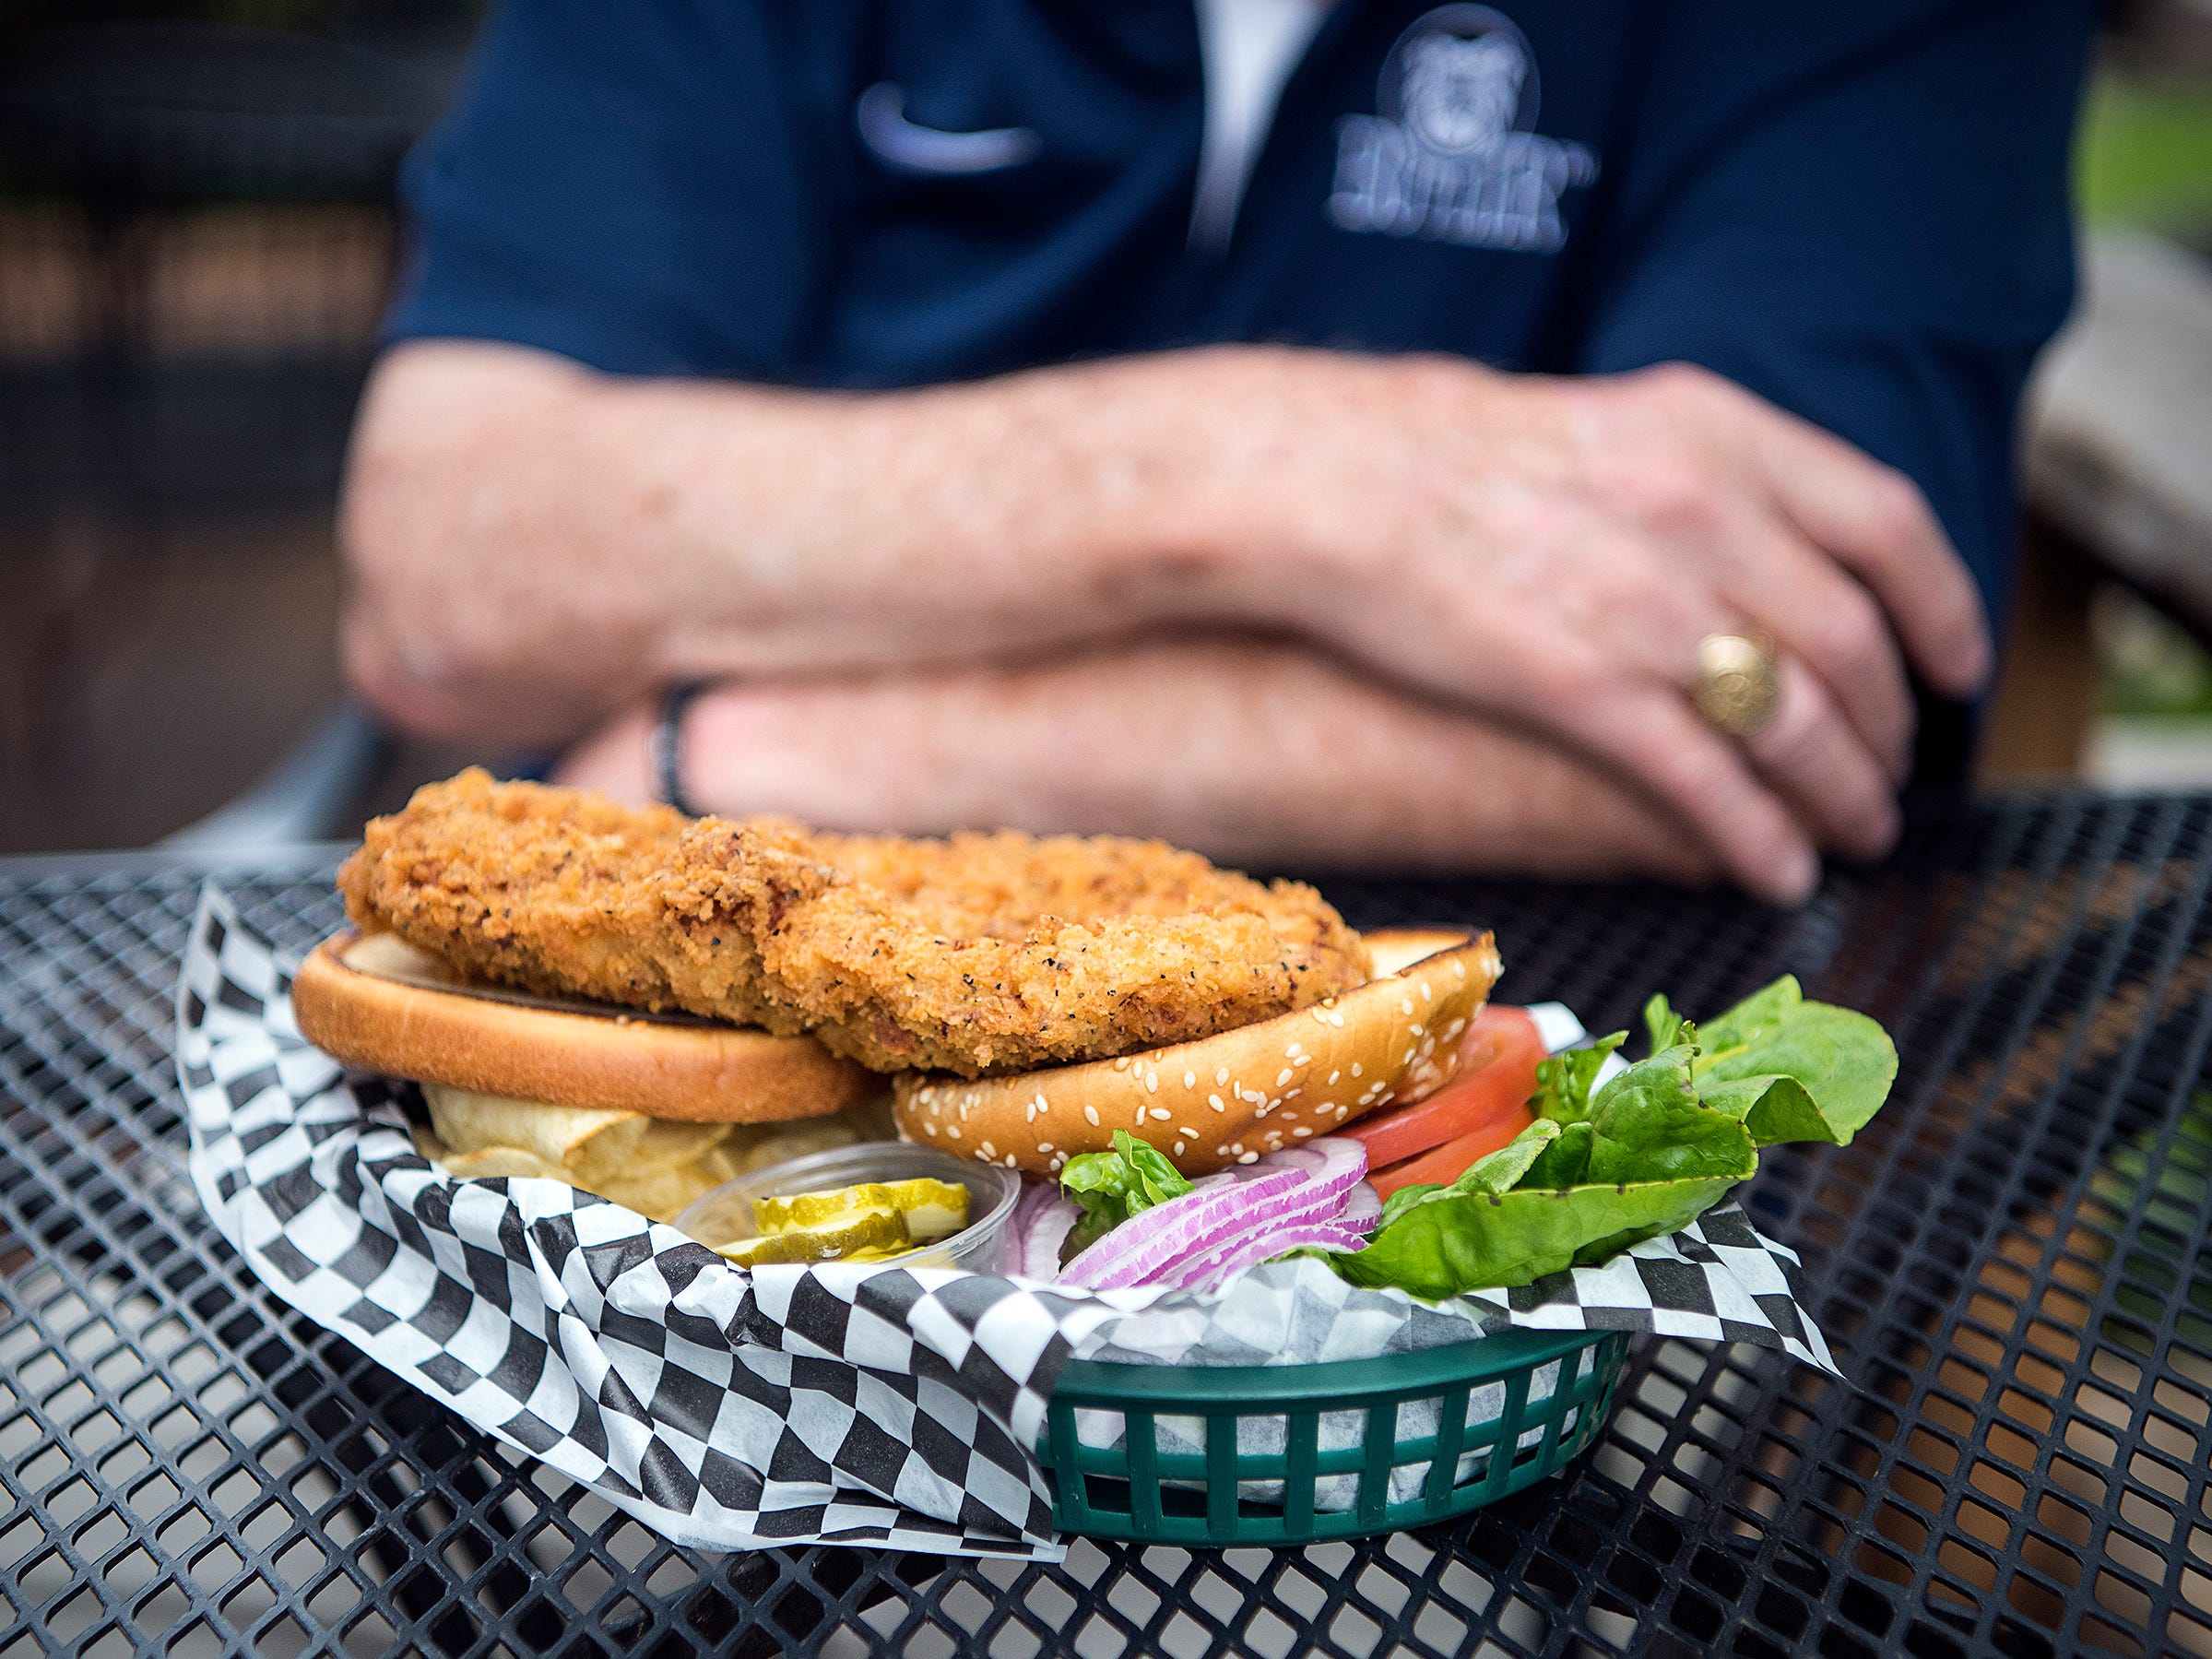 The pork tenderloin sandwich at Plump's Last Shot is a hefty, delicious meal that comes with pickles, red onions, lettuce and a host of condiments. The tenderloin is cut and pounded out in-house, and the breading is a special recipe cooked up by a former chef at the bar.